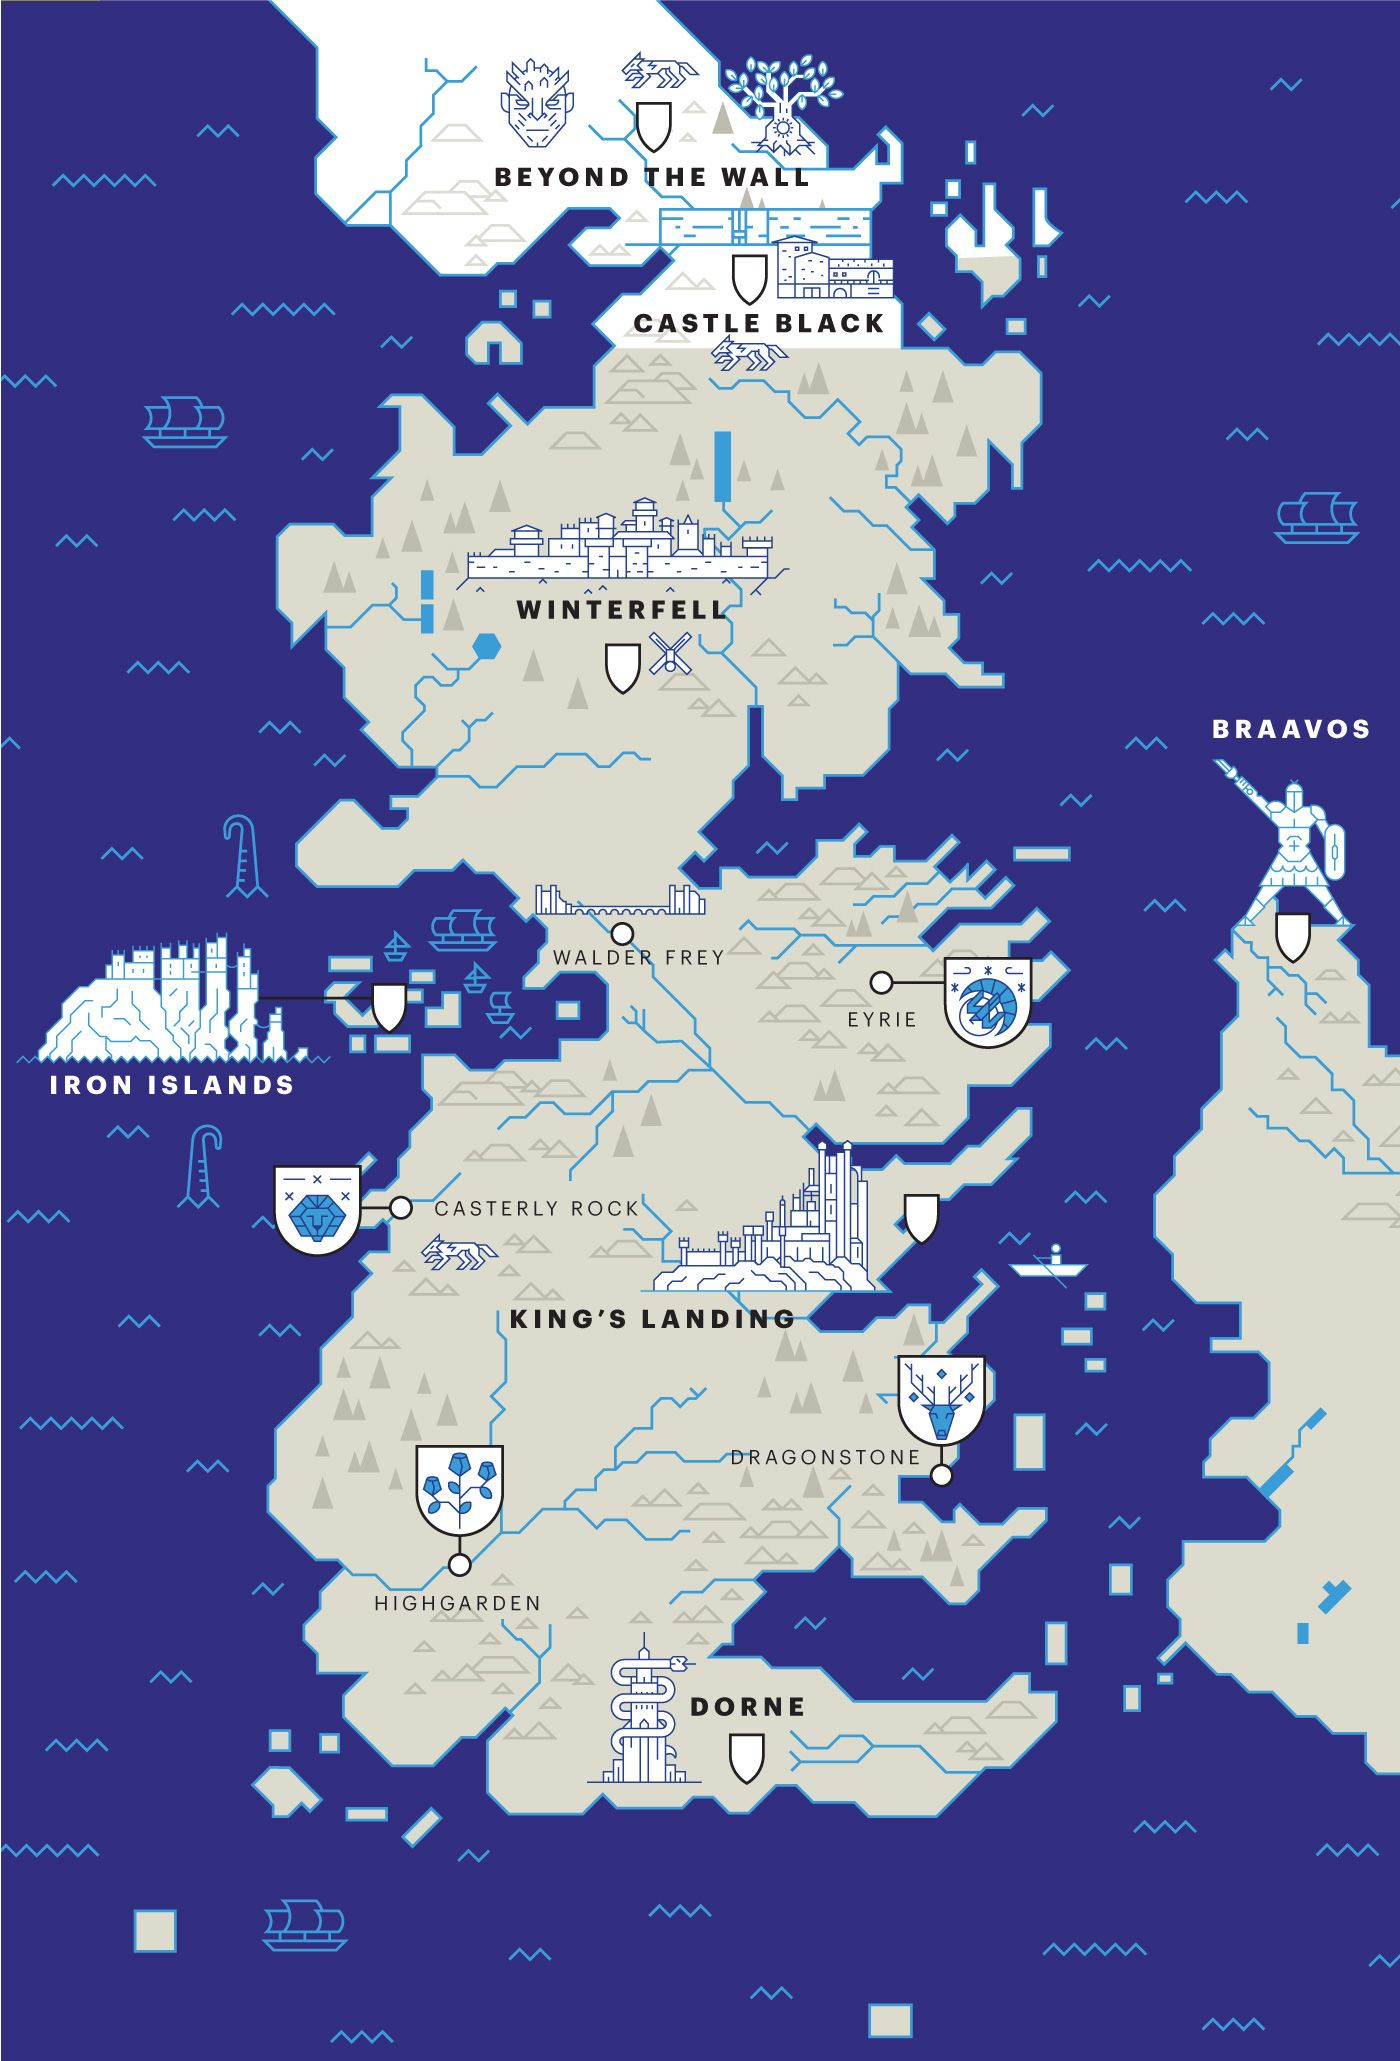 A brand new map of game of thrones for entertainment weekly the a brand new map of game of thrones for entertainment weekly the american magazine about gumiabroncs Image collections